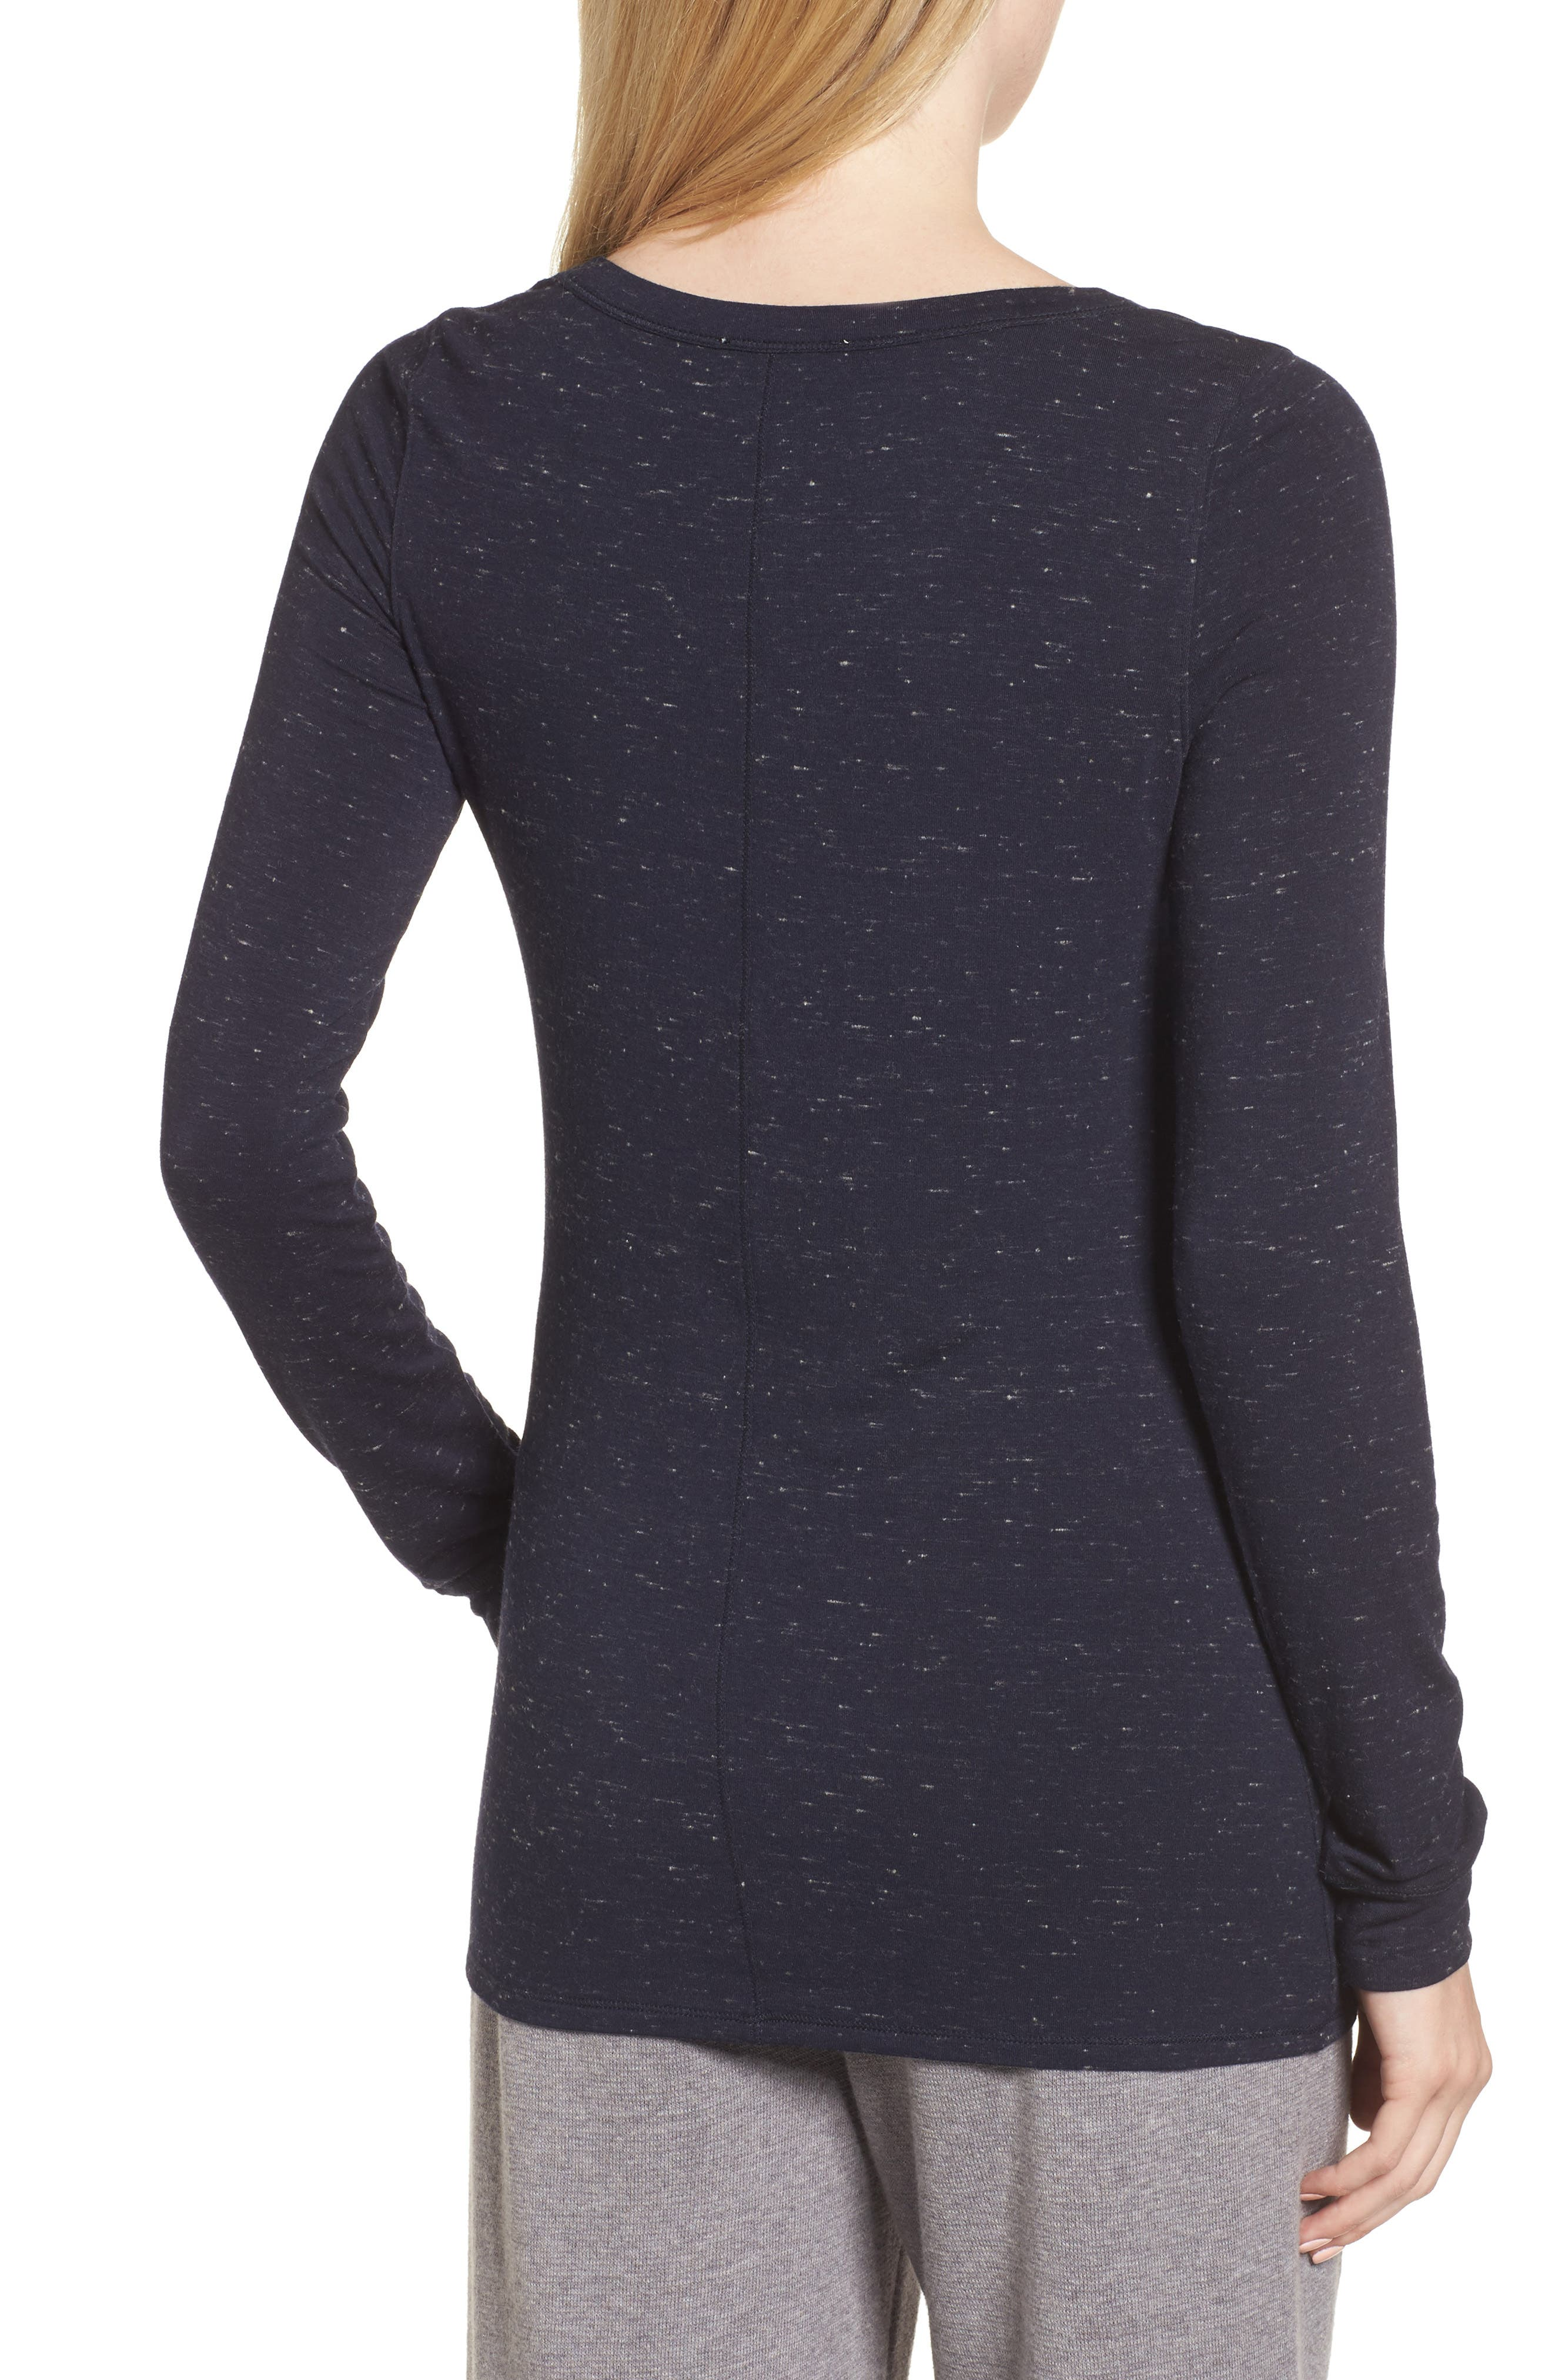 Long Sleeve Slub Knit Tee,                             Alternate thumbnail 2, color,                             Navy- Ivory Speckled Combo